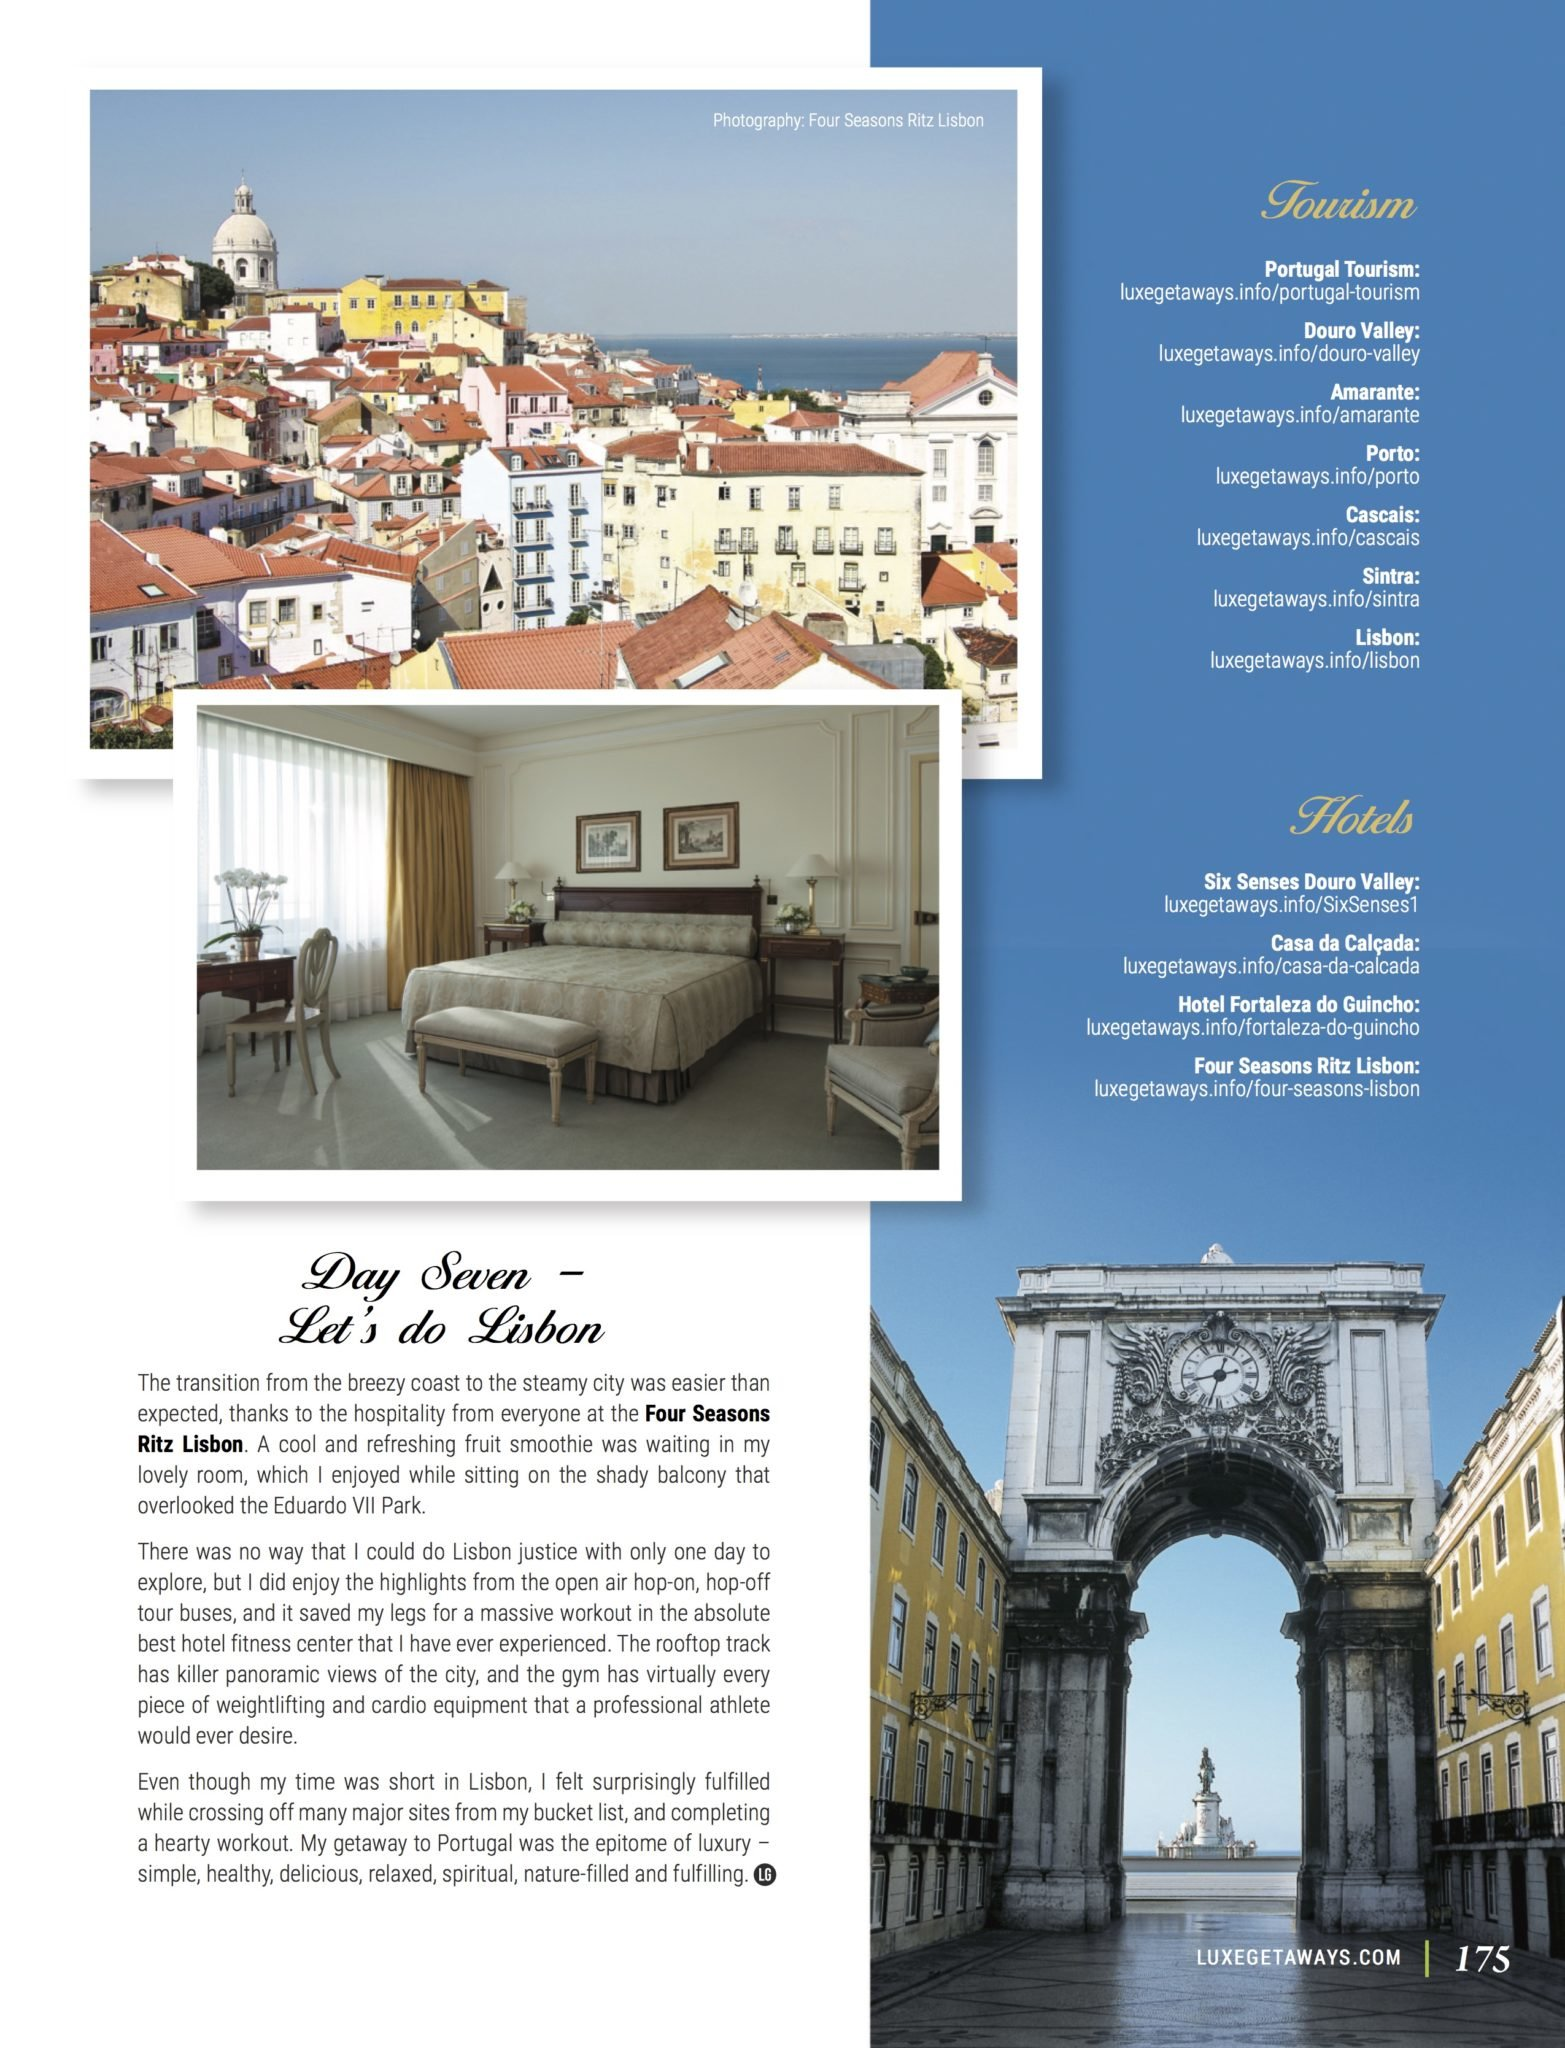 LuxeGetaways - Luxury Travel - Luxury Travel Magazine - Luxe Getaways - Luxury Lifestyle - Fall/Winter 2017 Magazine Issue - Digital Magazine - Travel Magazine - Portugal - Priscilla Pilon